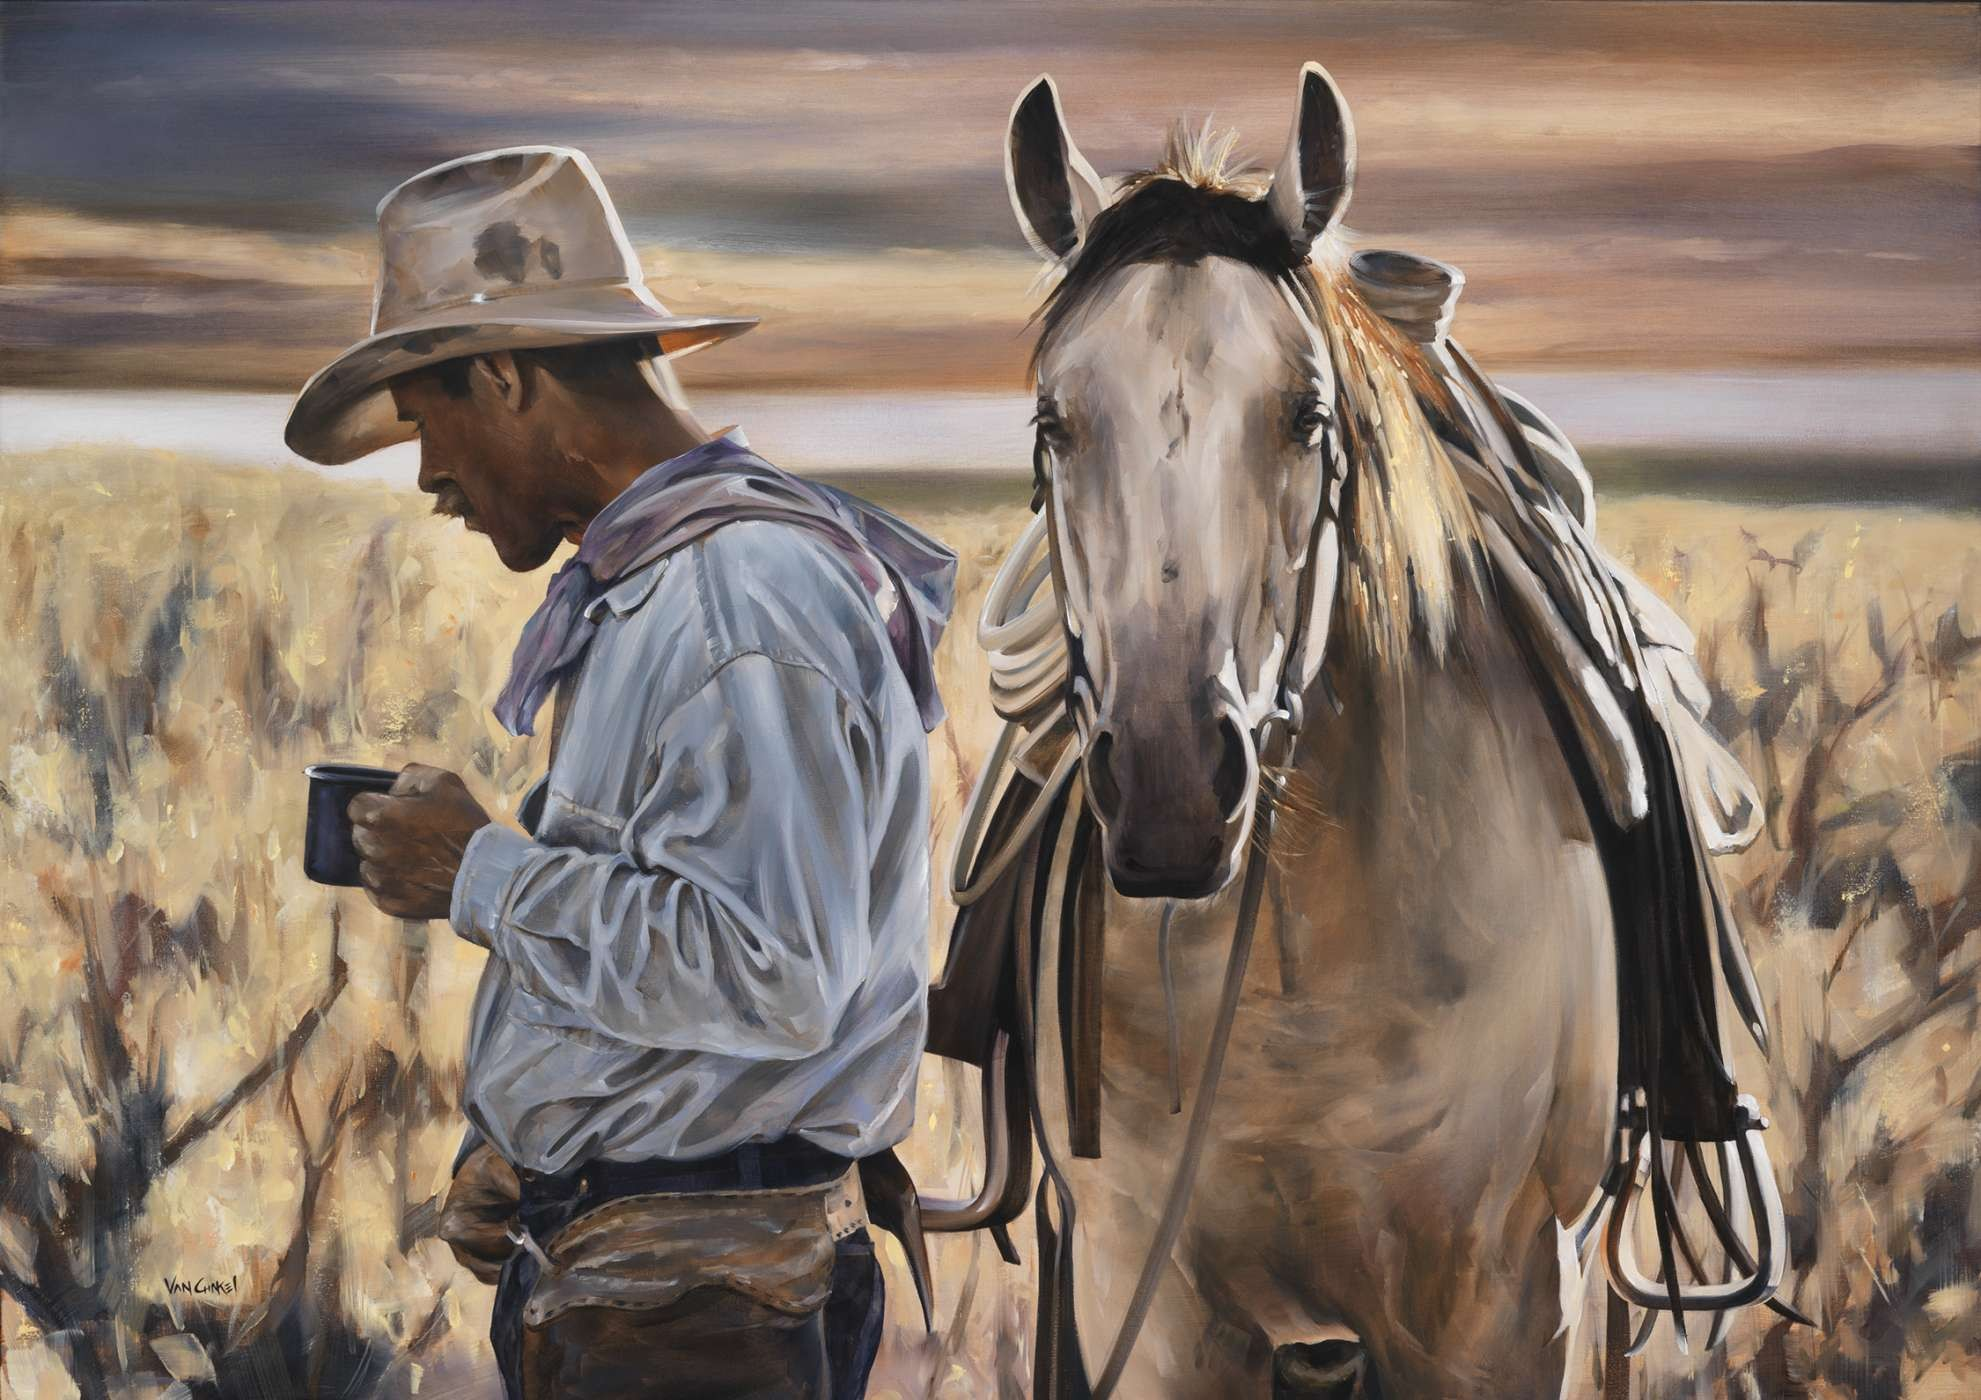 paintings by Calgary artist Paul Van Ginkel